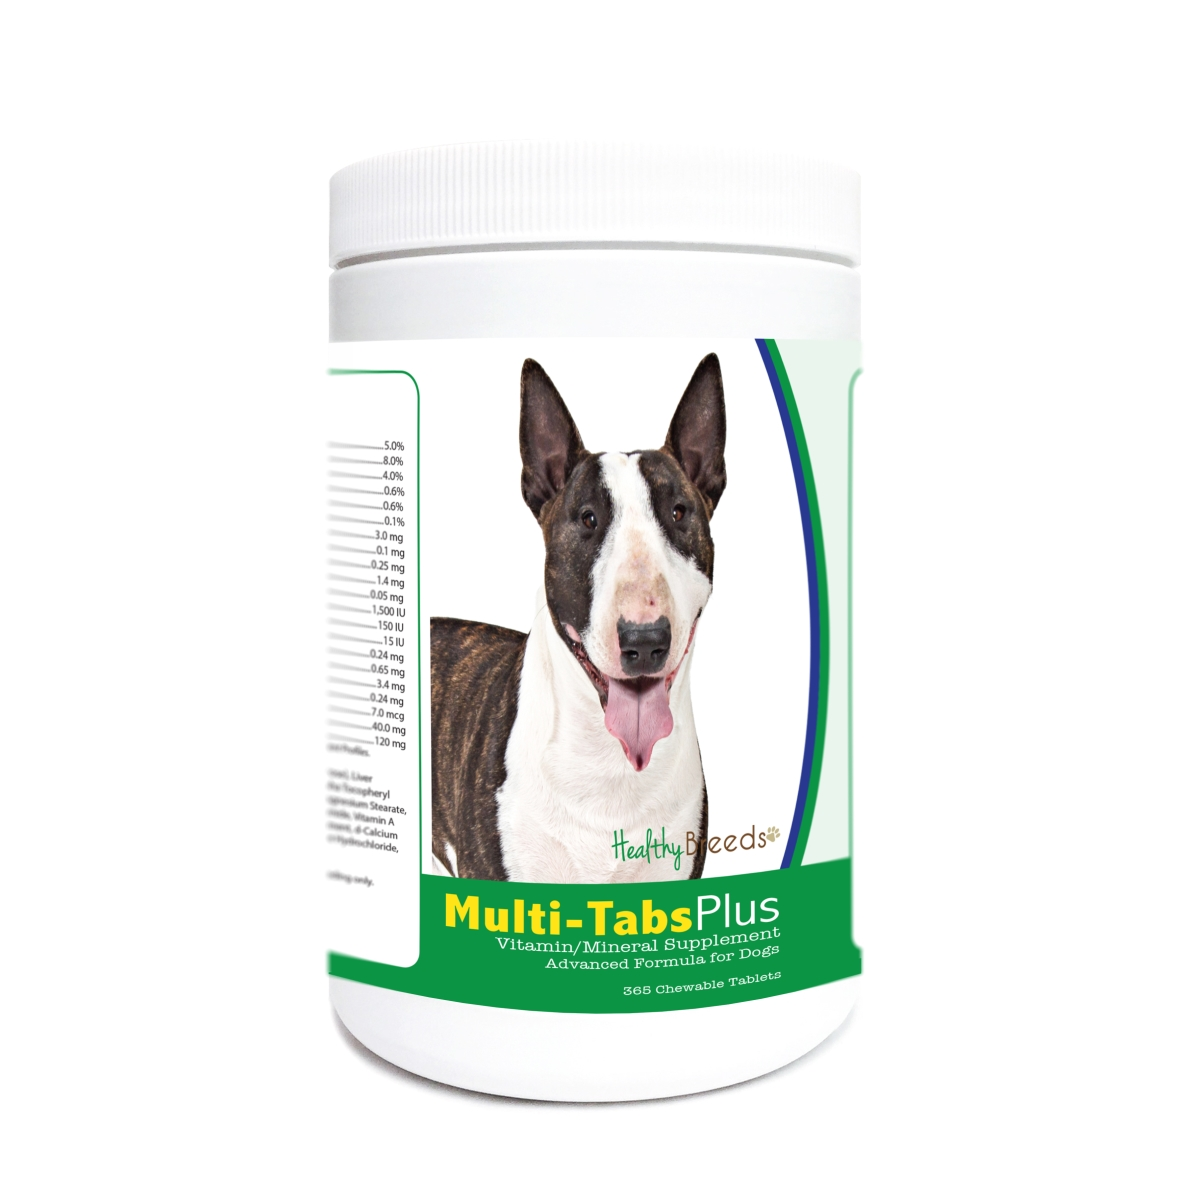 Healthy Breeds 840235176473 Miniature Bull Terrier Multi-Tabs Plus Chewable Tablets - 365 Count